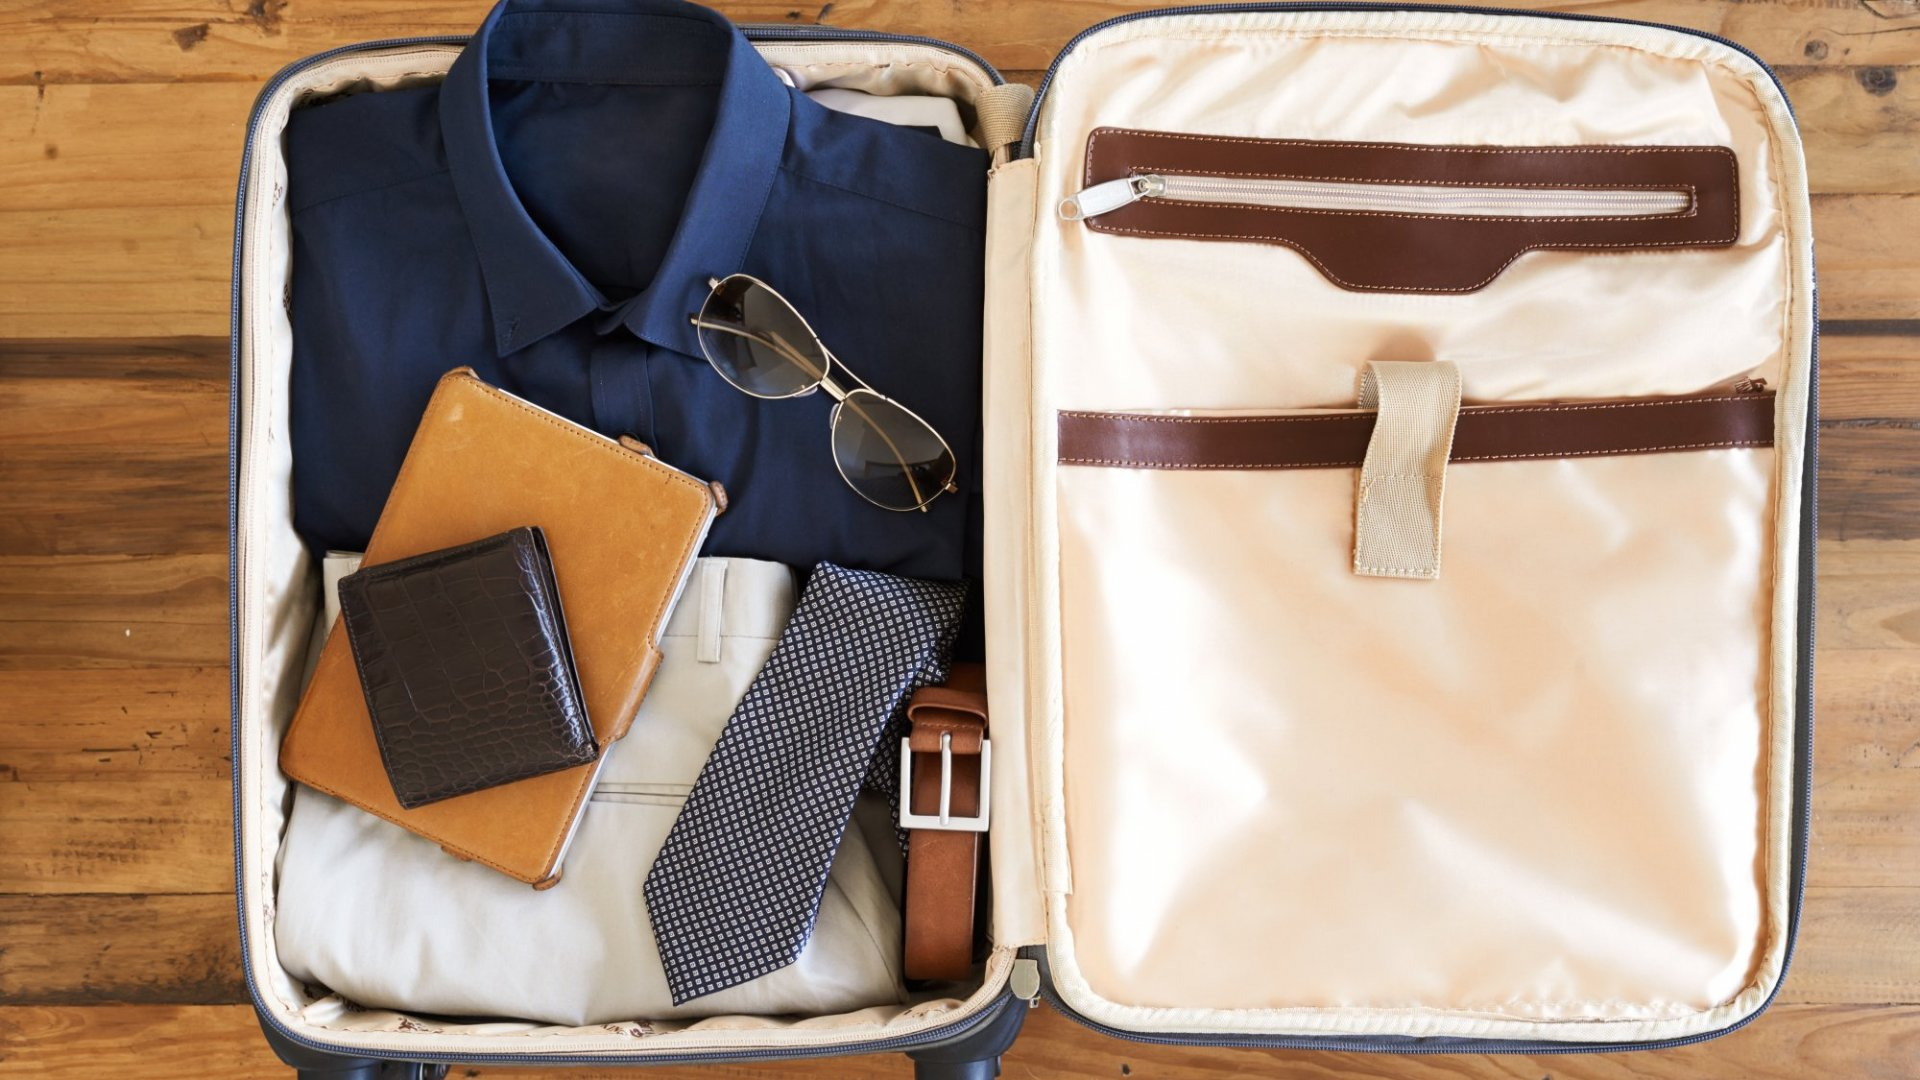 How Many Pairs of Underwear Should You Pack On Your Business Trip?  2 Million Miler Packing Secrets